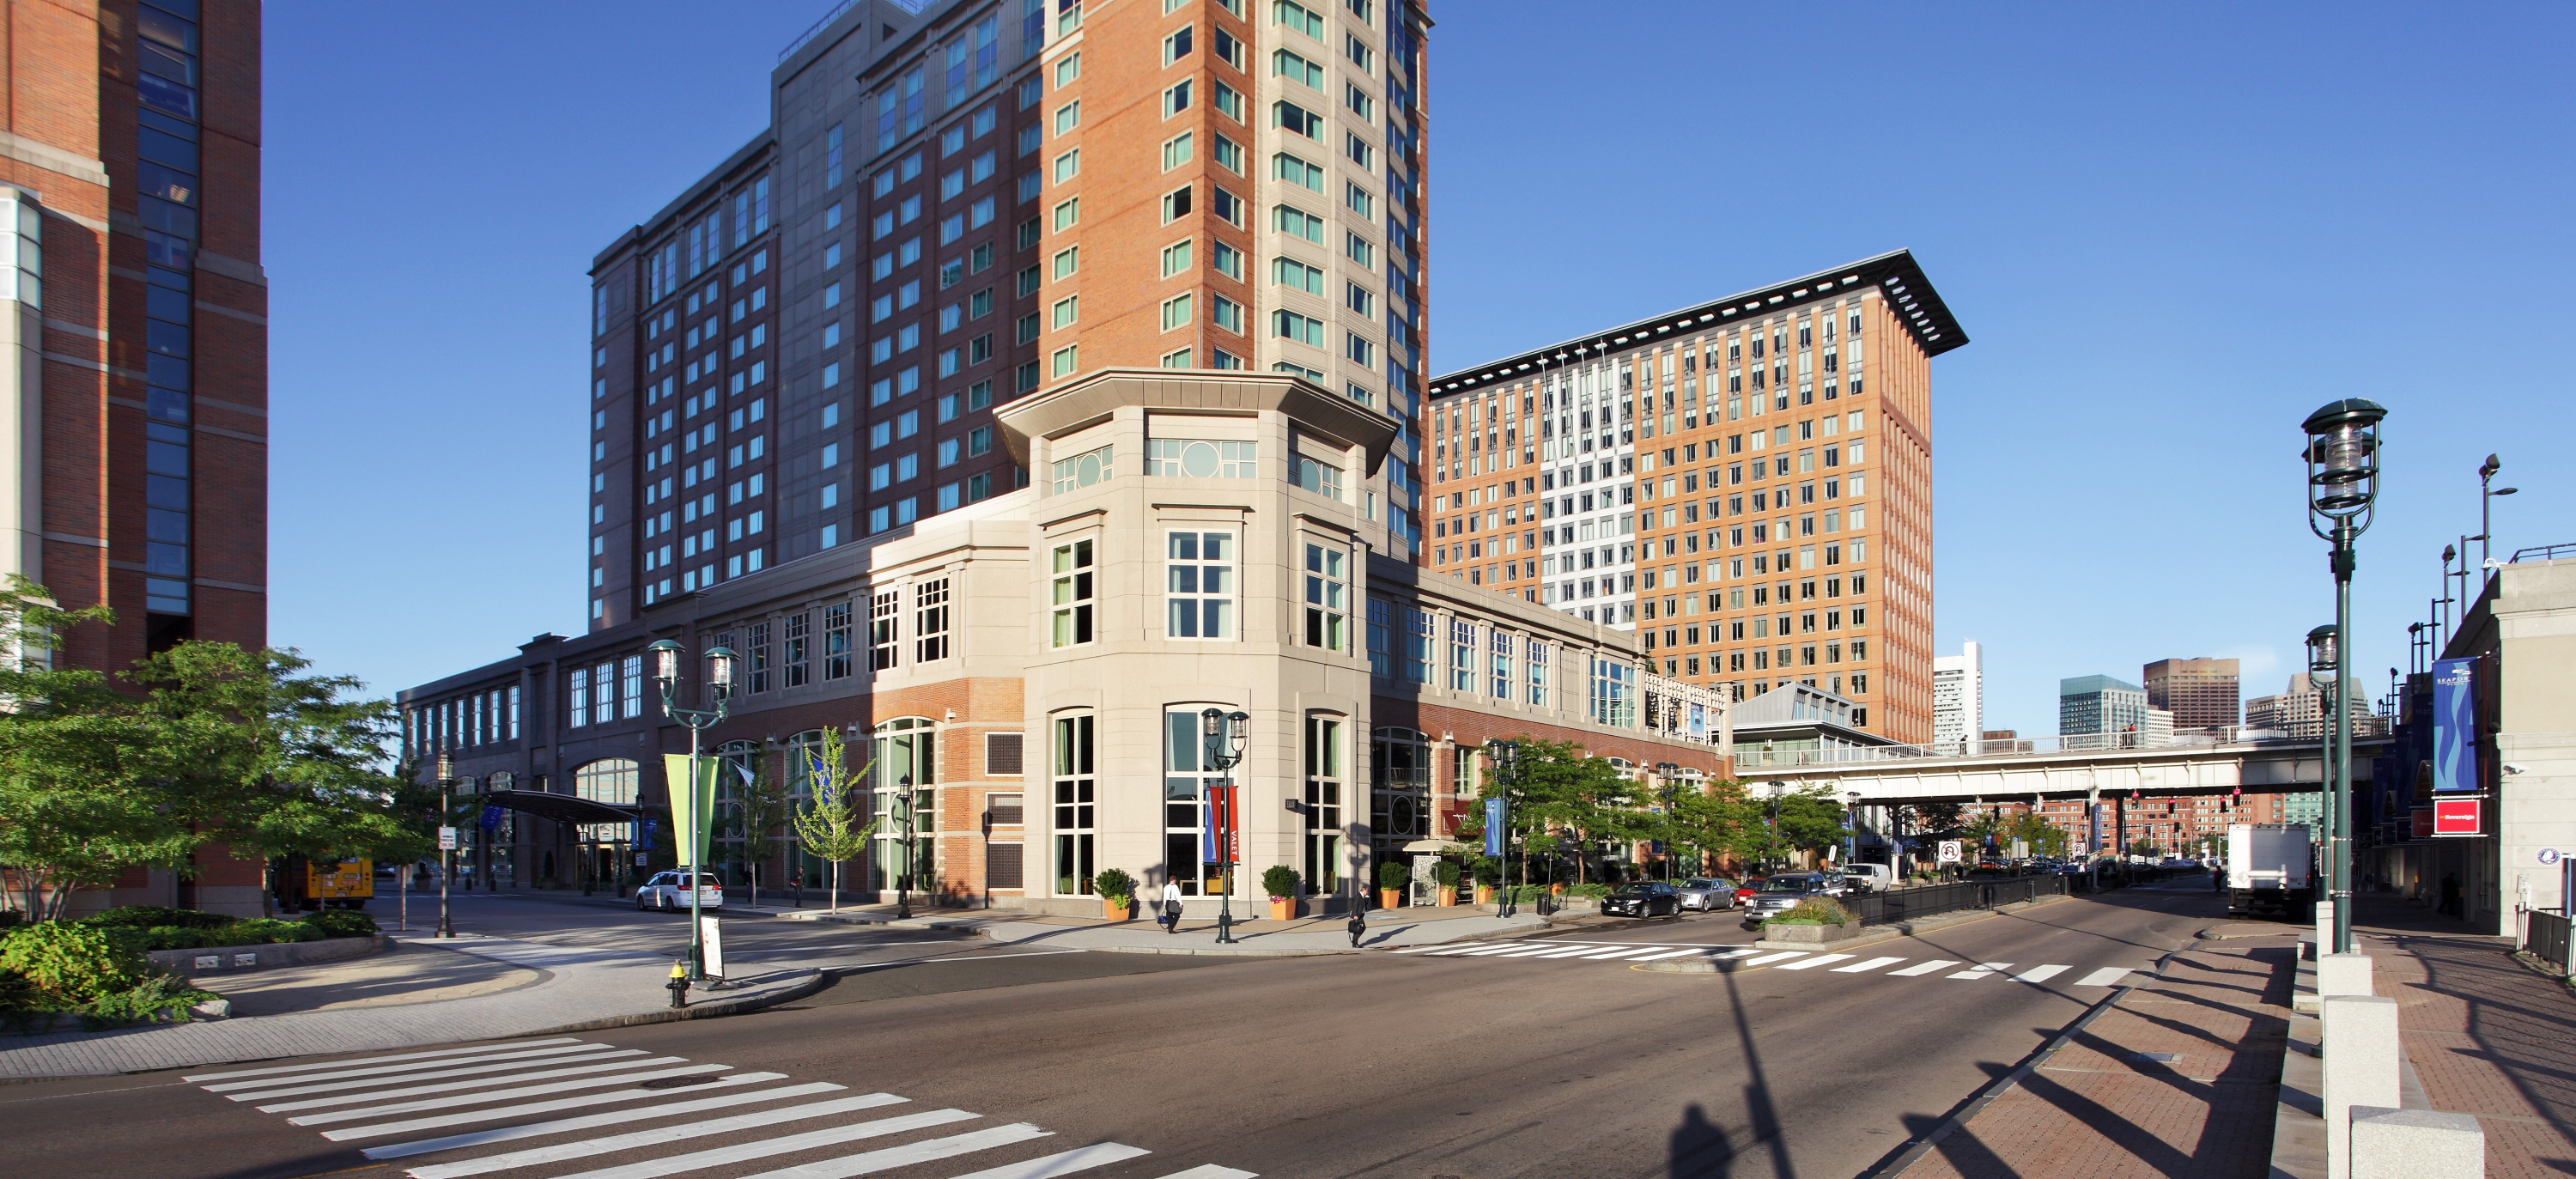 Seaport Boston Waterfront Hotel Reviews - Read Guest Comments - Book Today